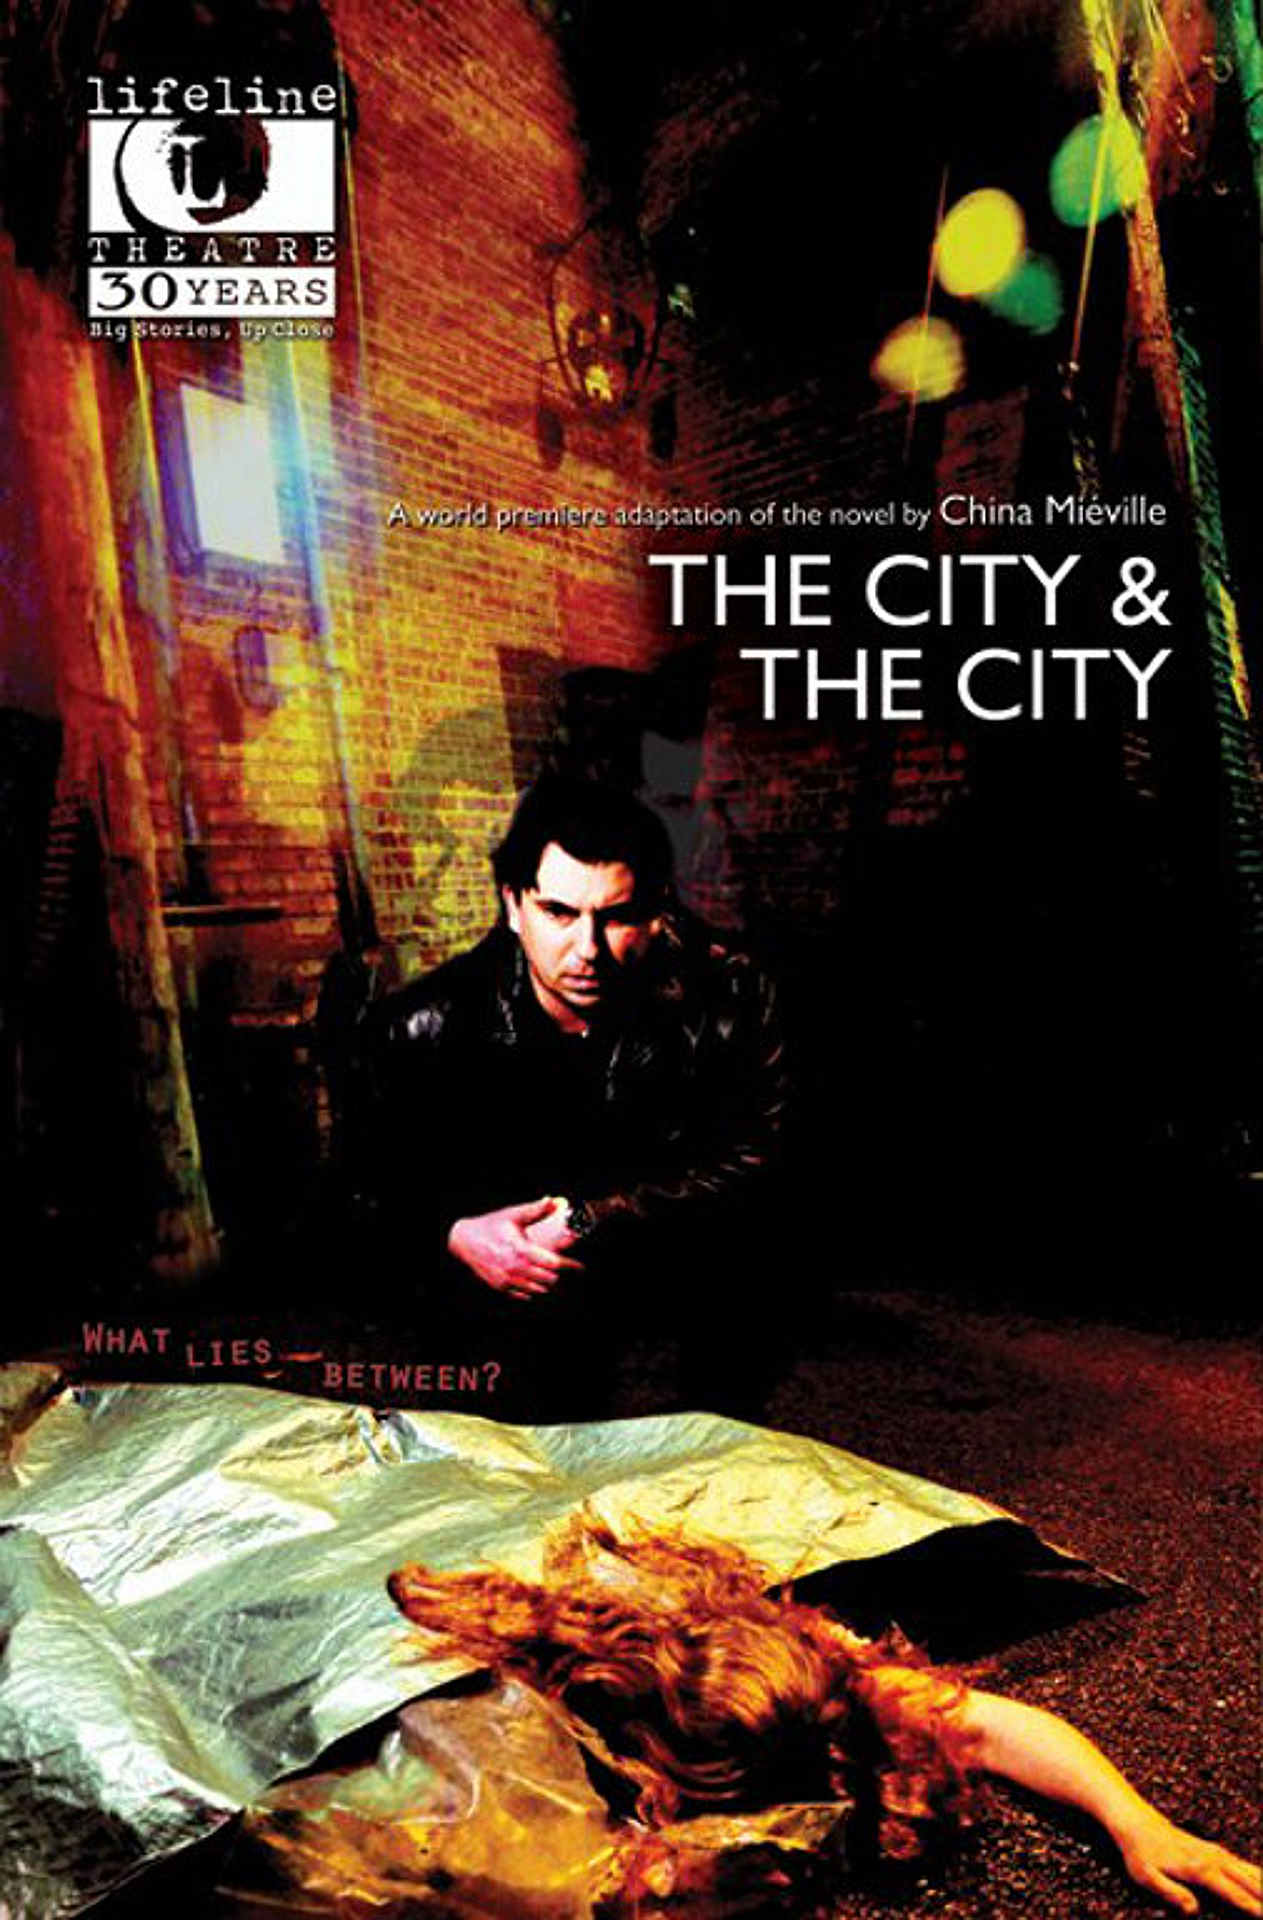 THE CITY AND THE CITY (Lifeline Theatre, 2013)